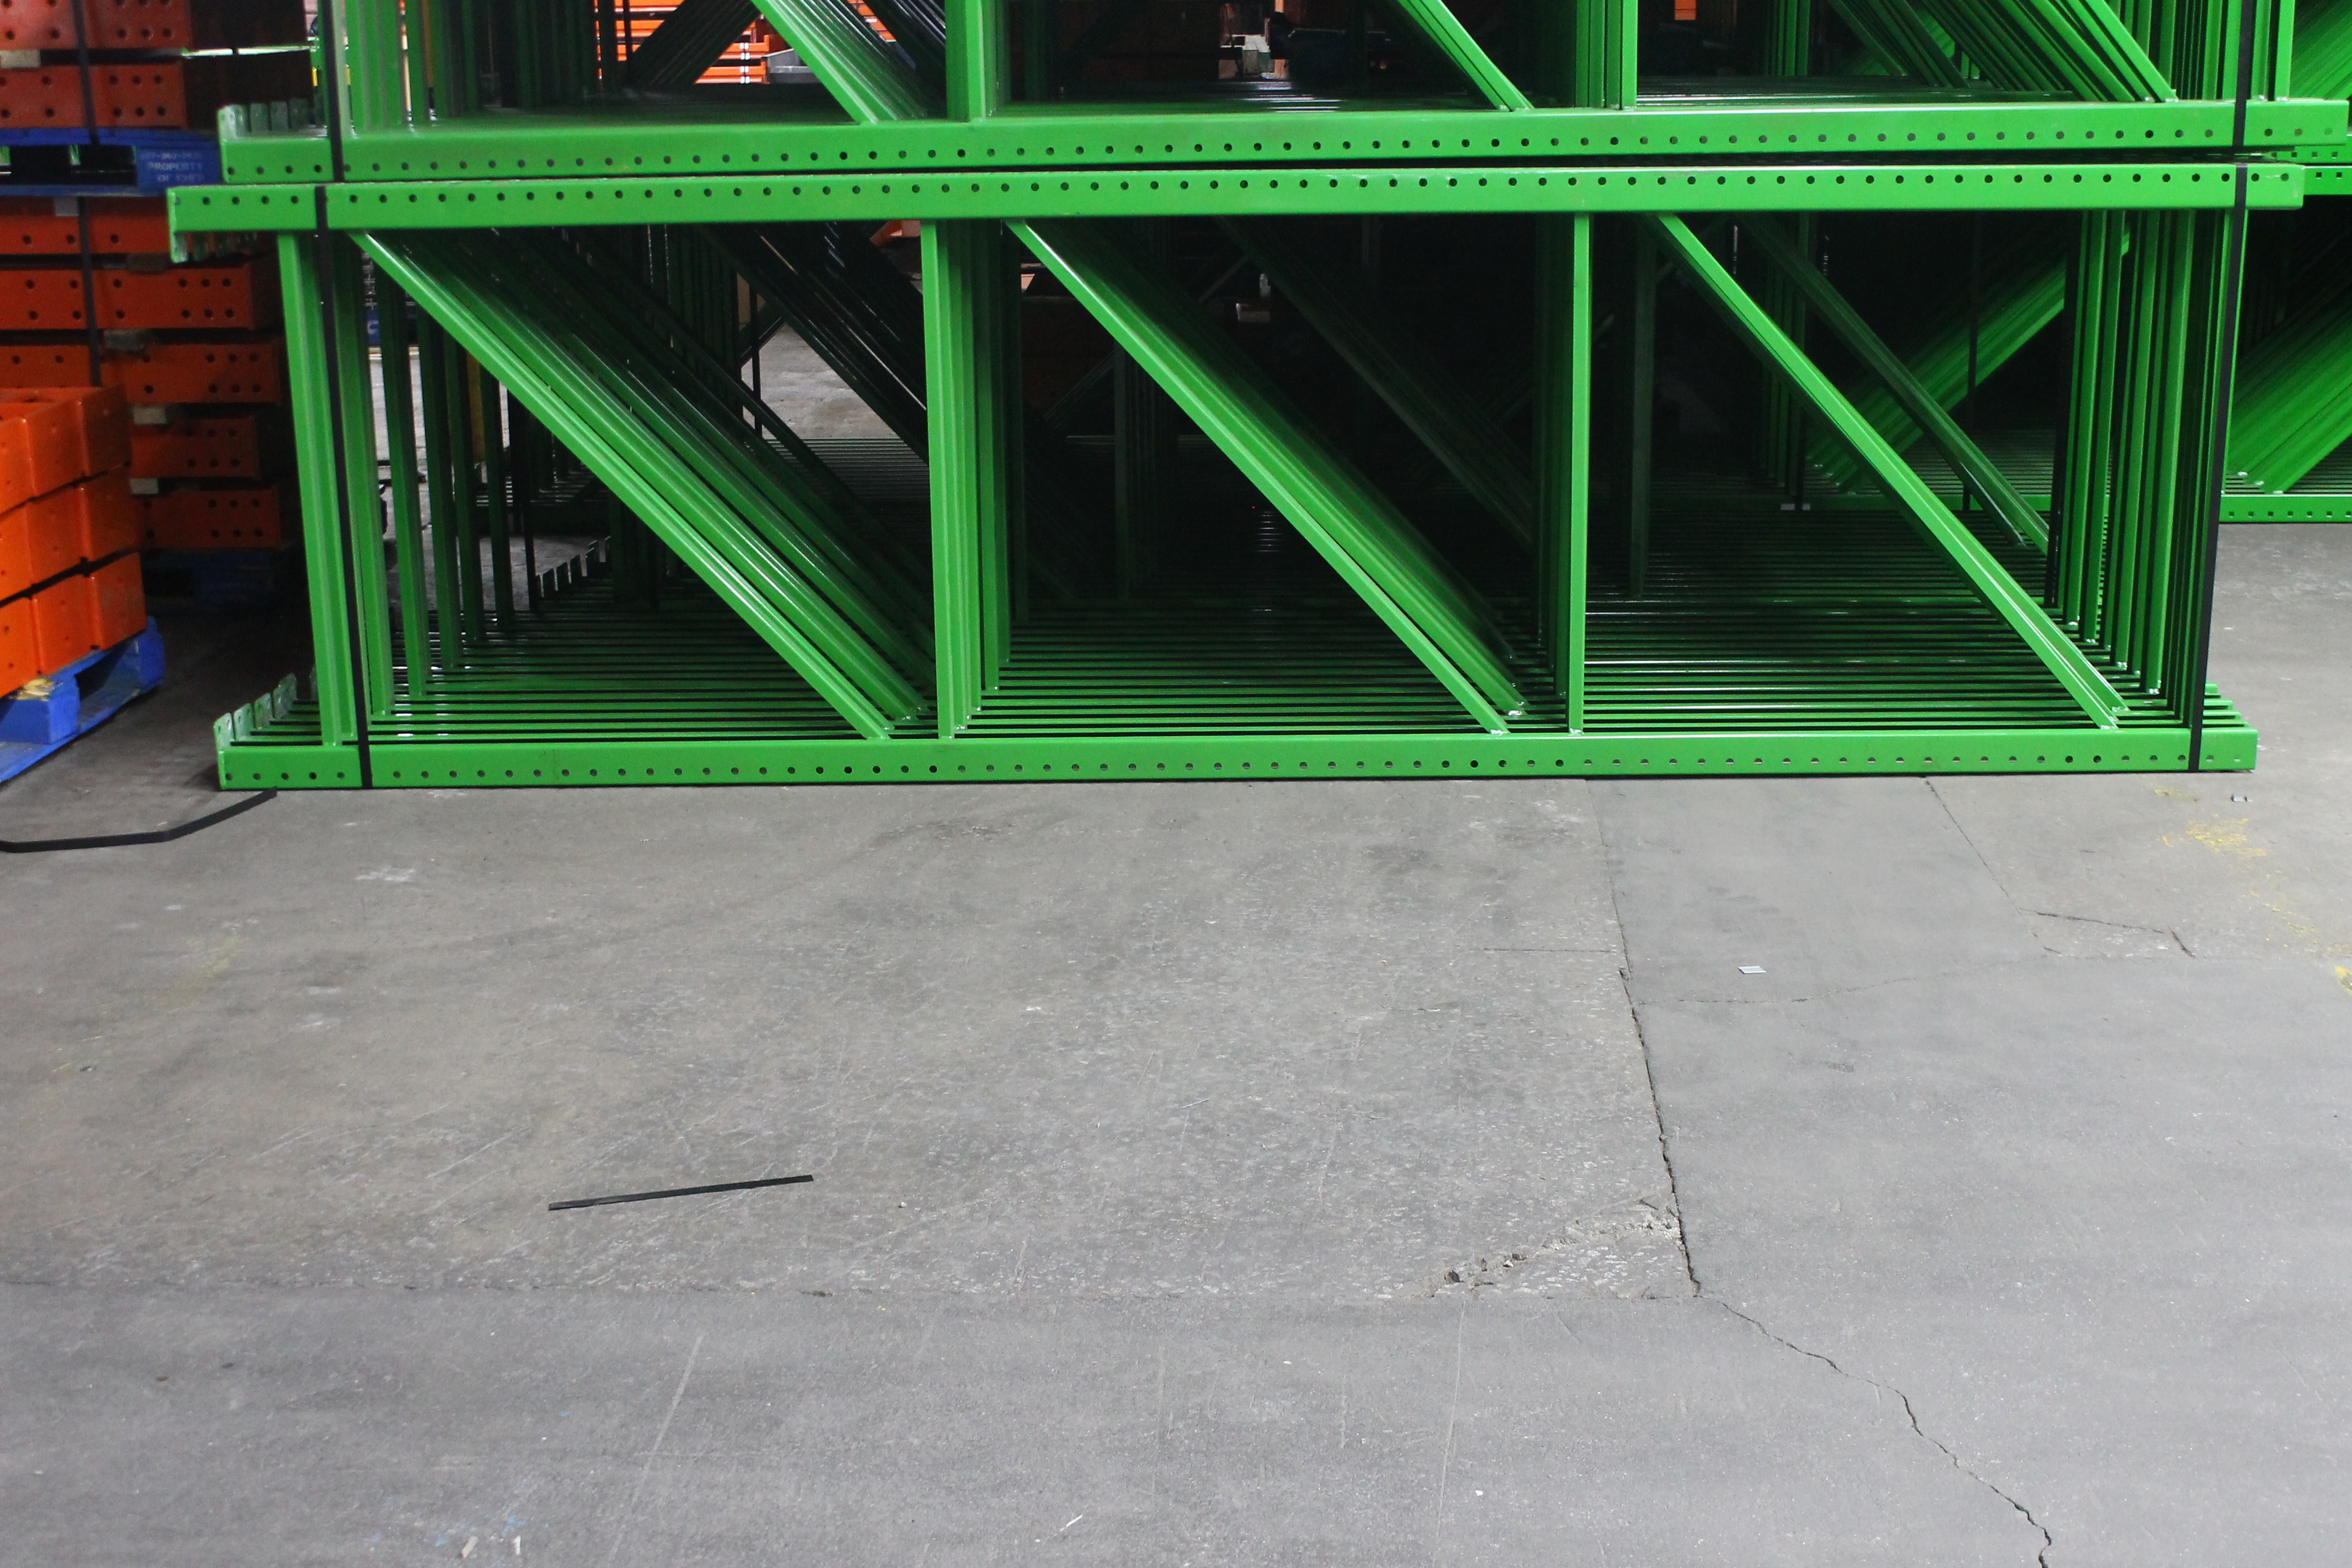 """NEW 15 PCS OF TEARDROP UPRIGHT. SIZE 12'H X 42""""D, 3""""X 3"""" GREEN - Image 2 of 2"""